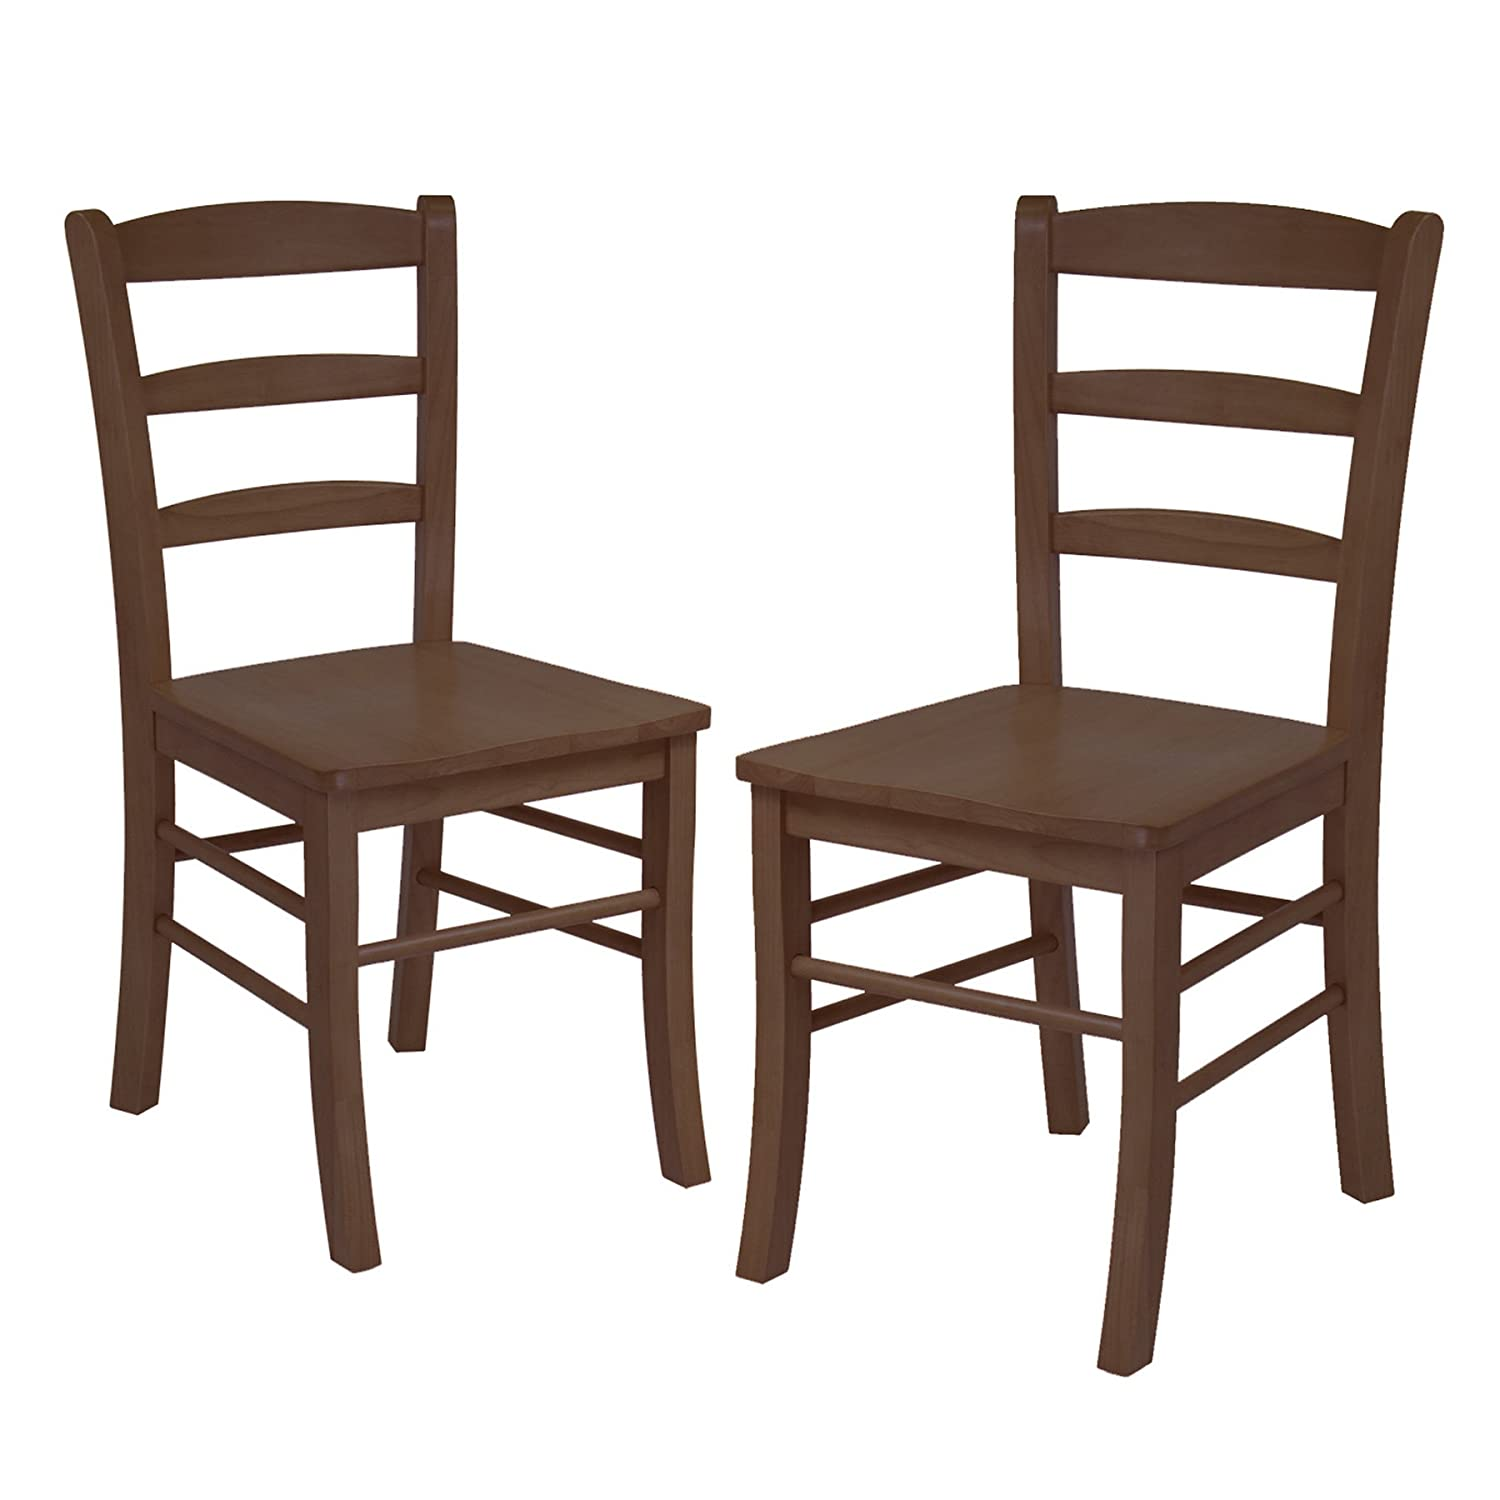 Dark Wood Dining Room Chairs full size of dining room chairdark wood dining room chairs high back dining room Amazoncom Winsome Wood Ladder Back Chair Light Oak Set Of 2 Kitchen Dining